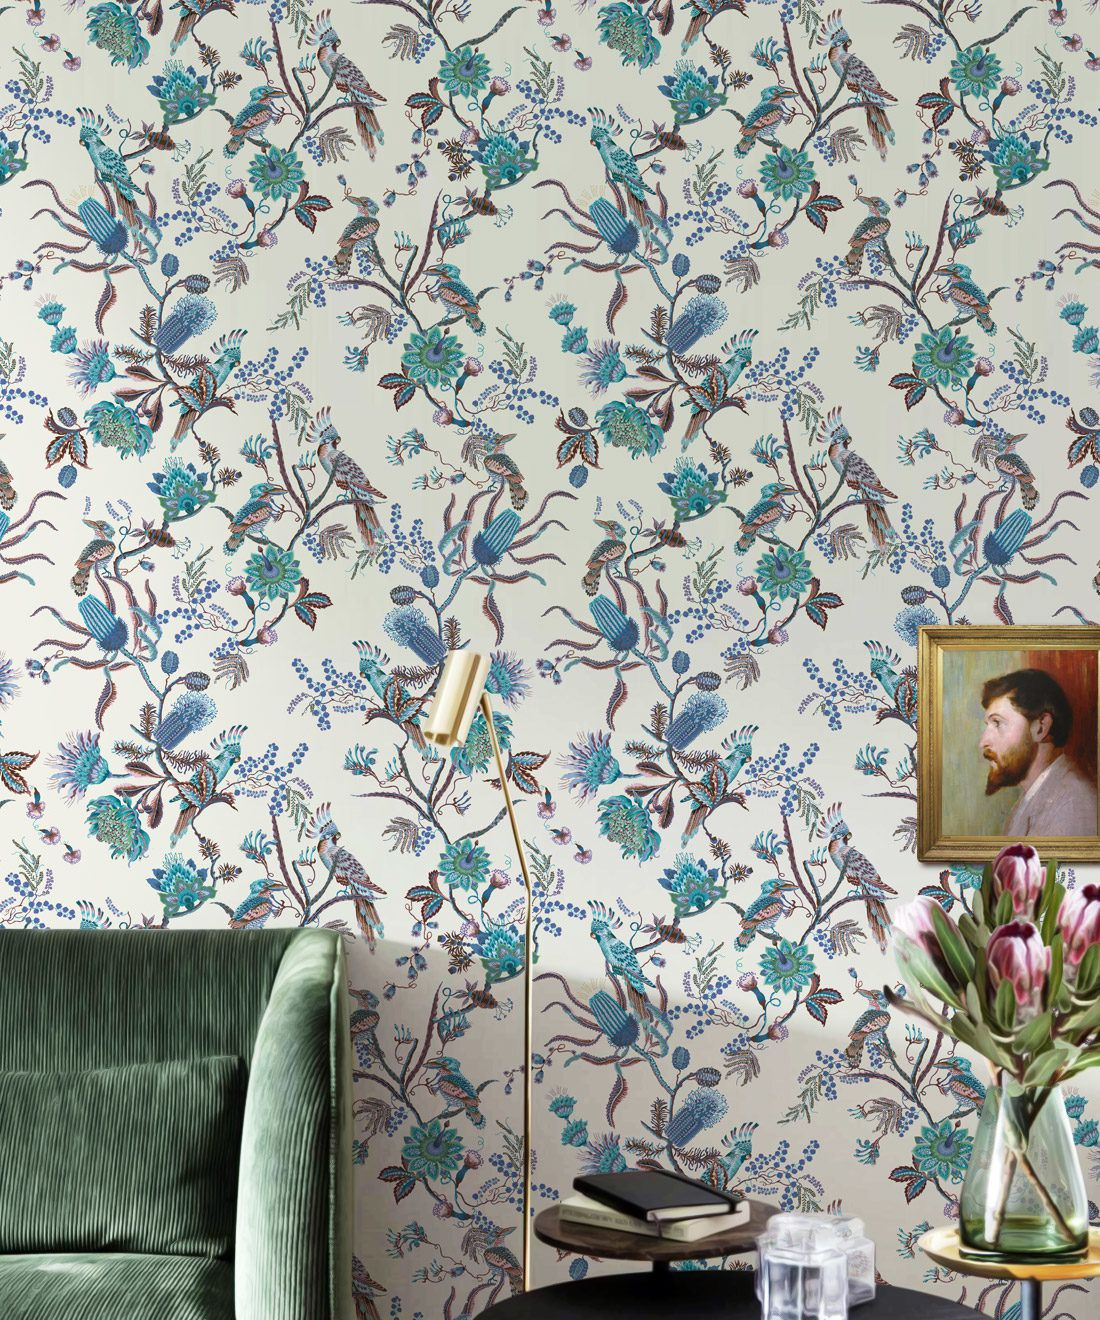 Matilda Wallpaper • Cockatoo, kookaburra • Australian Wallpaper • Milton & King USA • Blue Bell Insitu